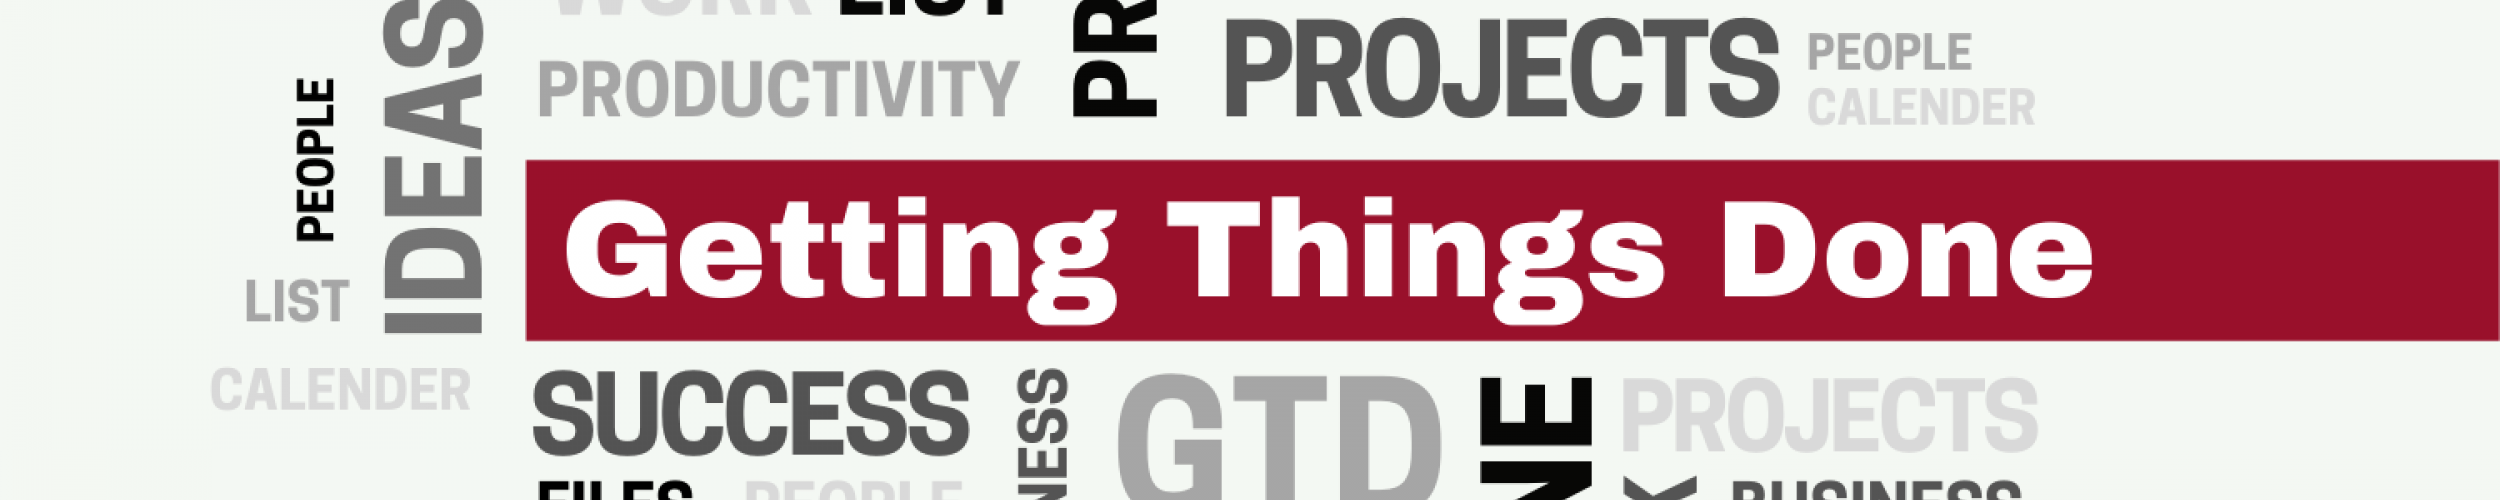 Online Getting Things Done training - 19 en 24 november 2020 - telkens voormiddag